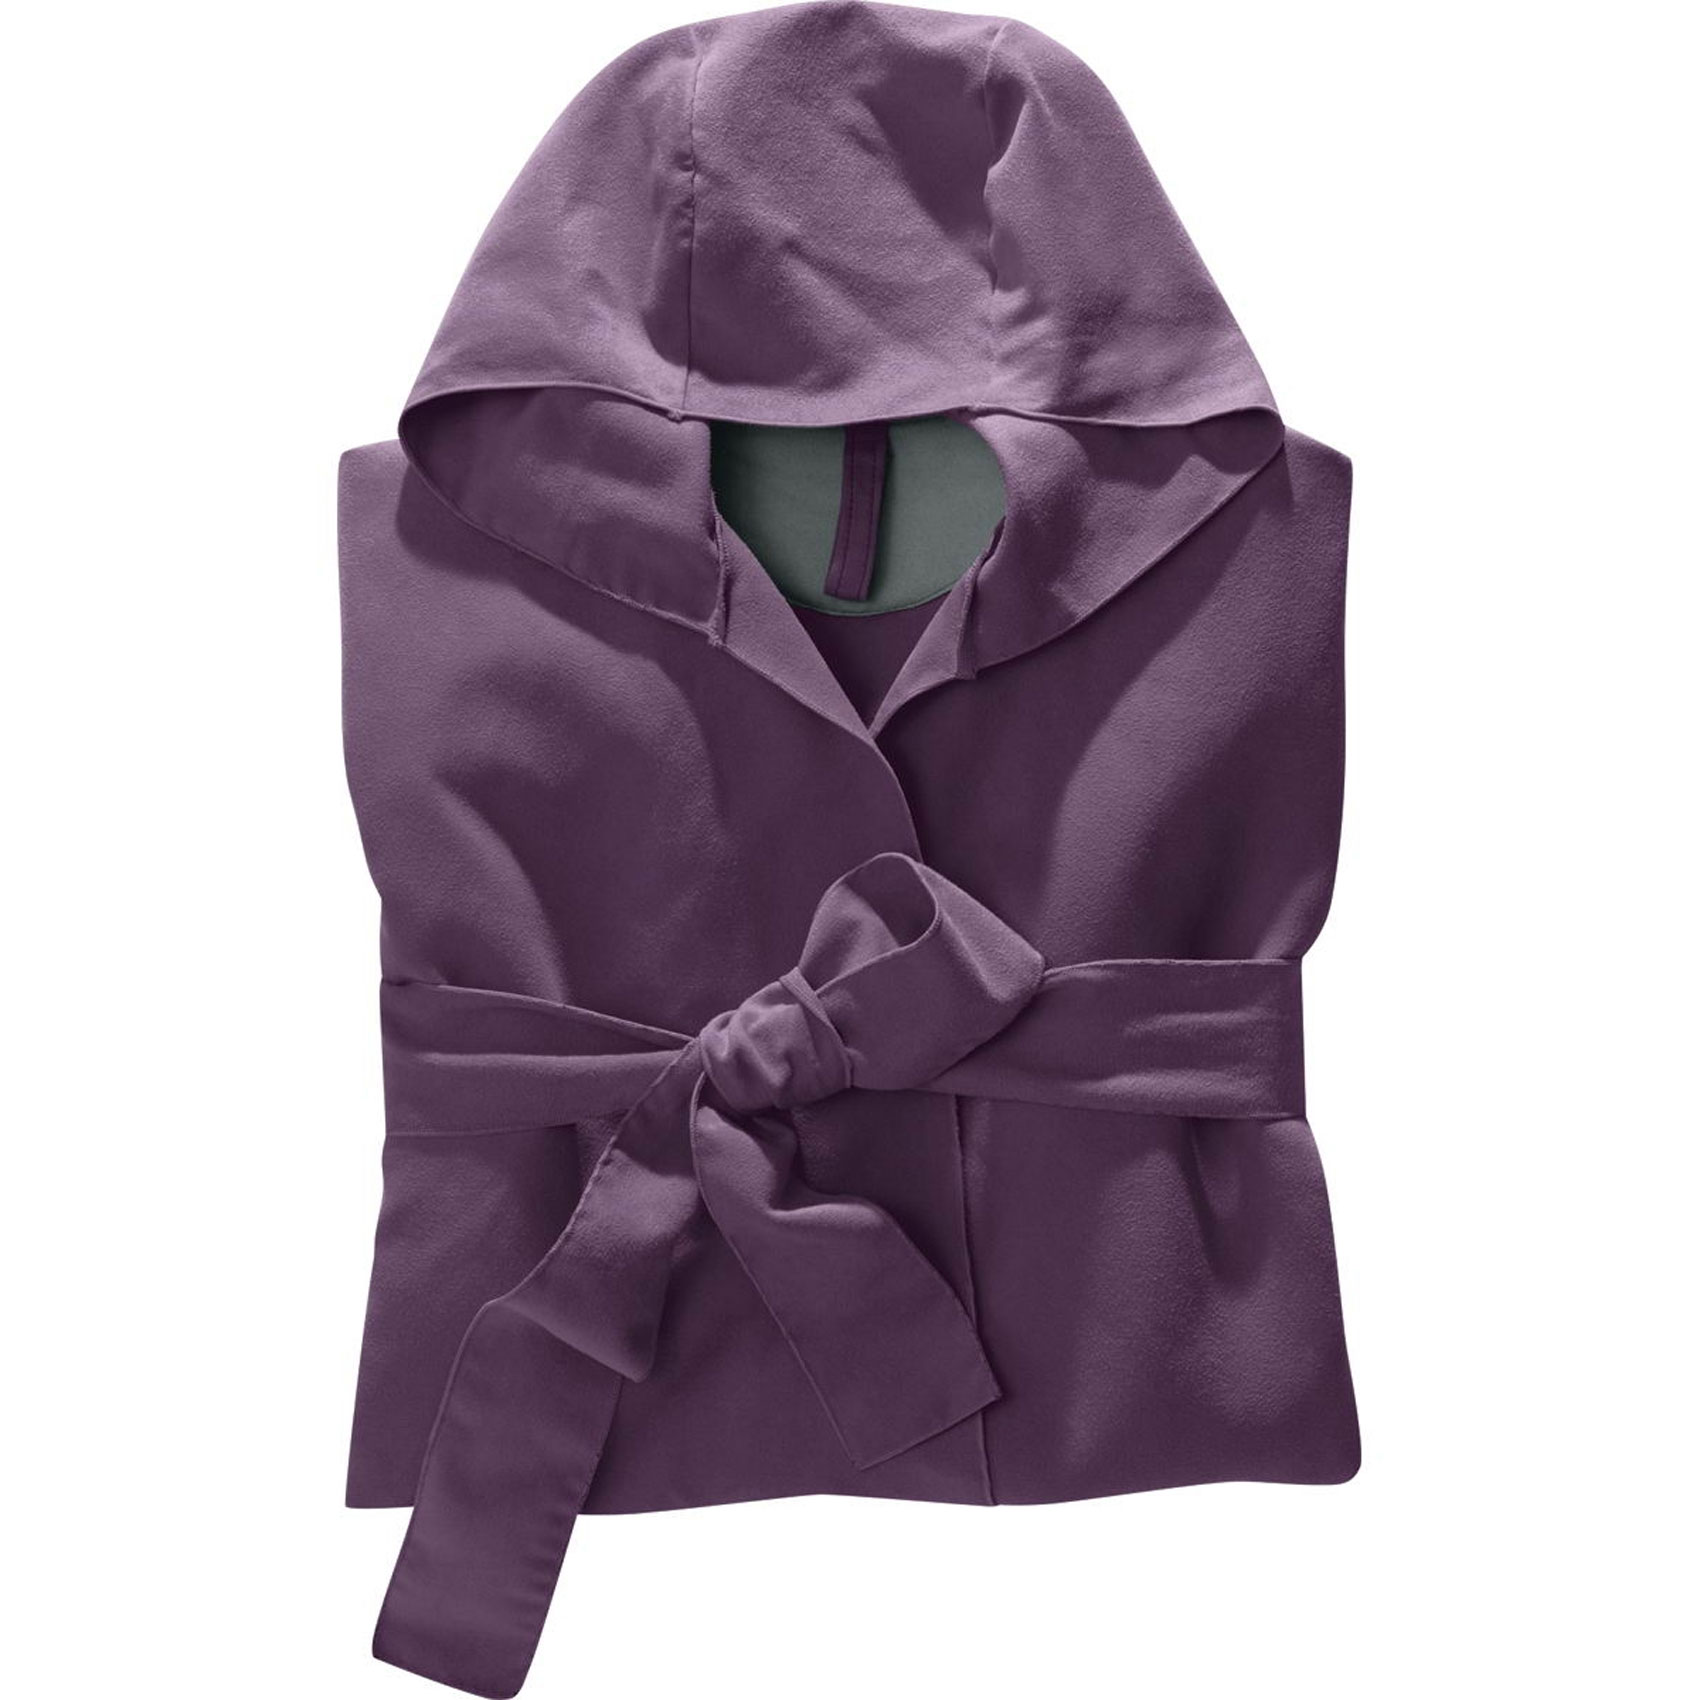 PackTowl Robe Currant-30